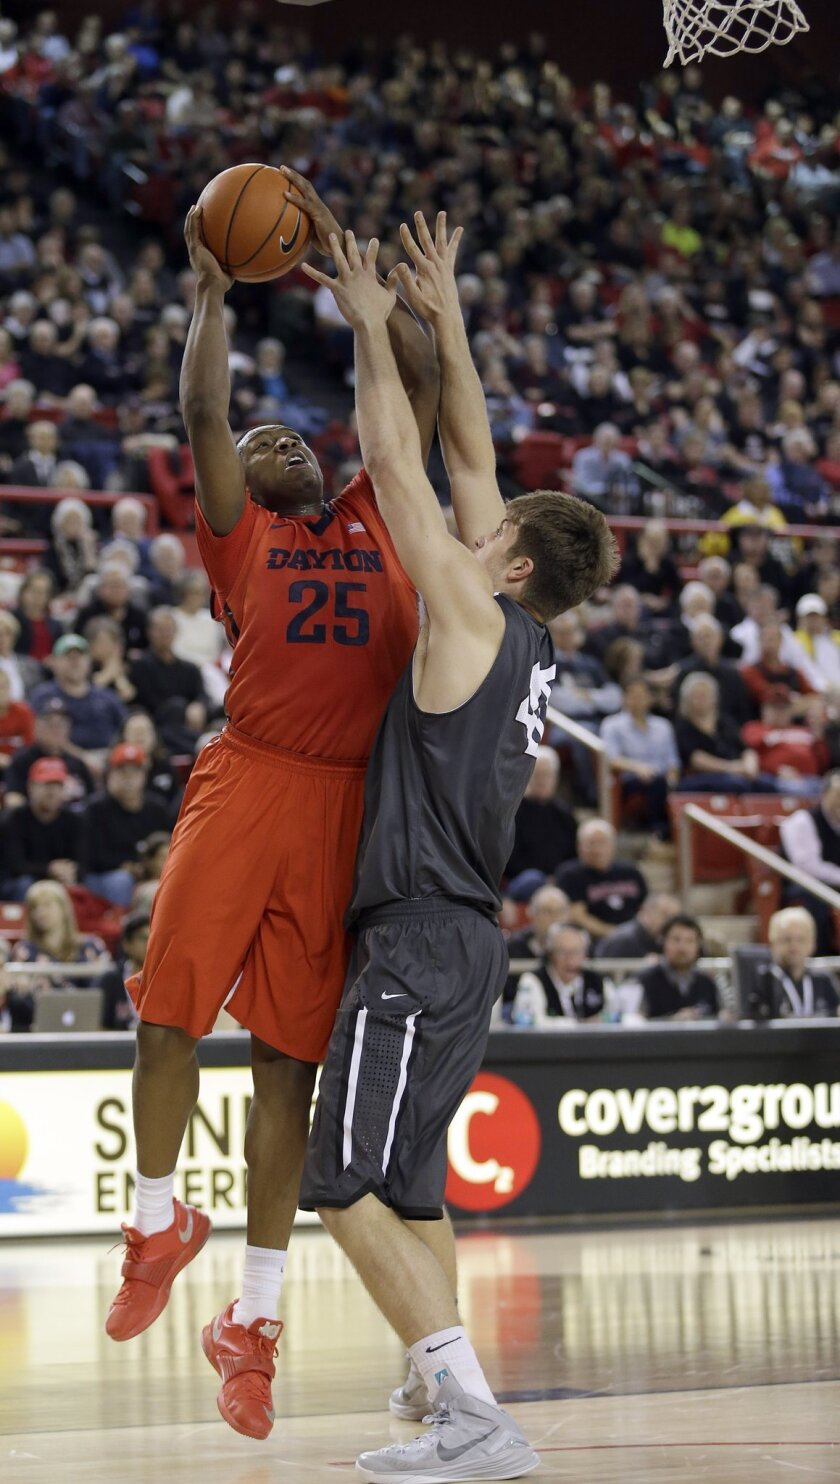 Dayton's Kendall Pollard, left, tries to get a shot off over Davidson's Andrew McAuliffe during the first half of an NCAA college basketball game in Davidson, N.C., Tuesday, Jan. 20, 2015. (AP Photo/Bob Leverone)